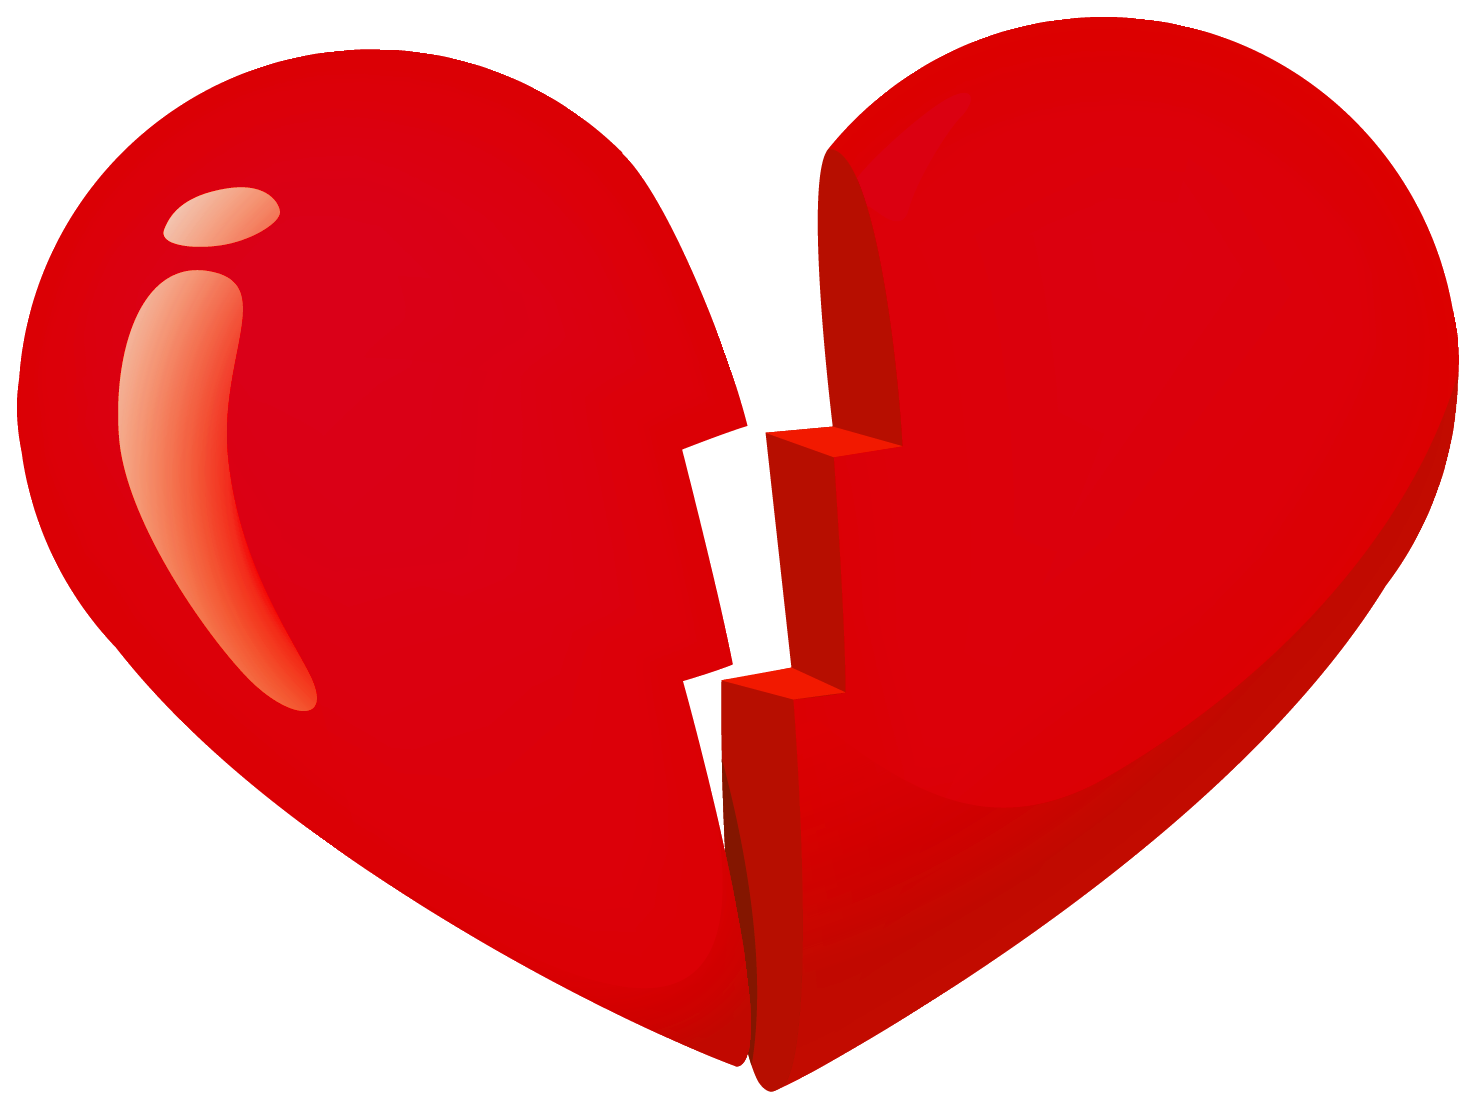 Broken clipart. Valentine red heart png